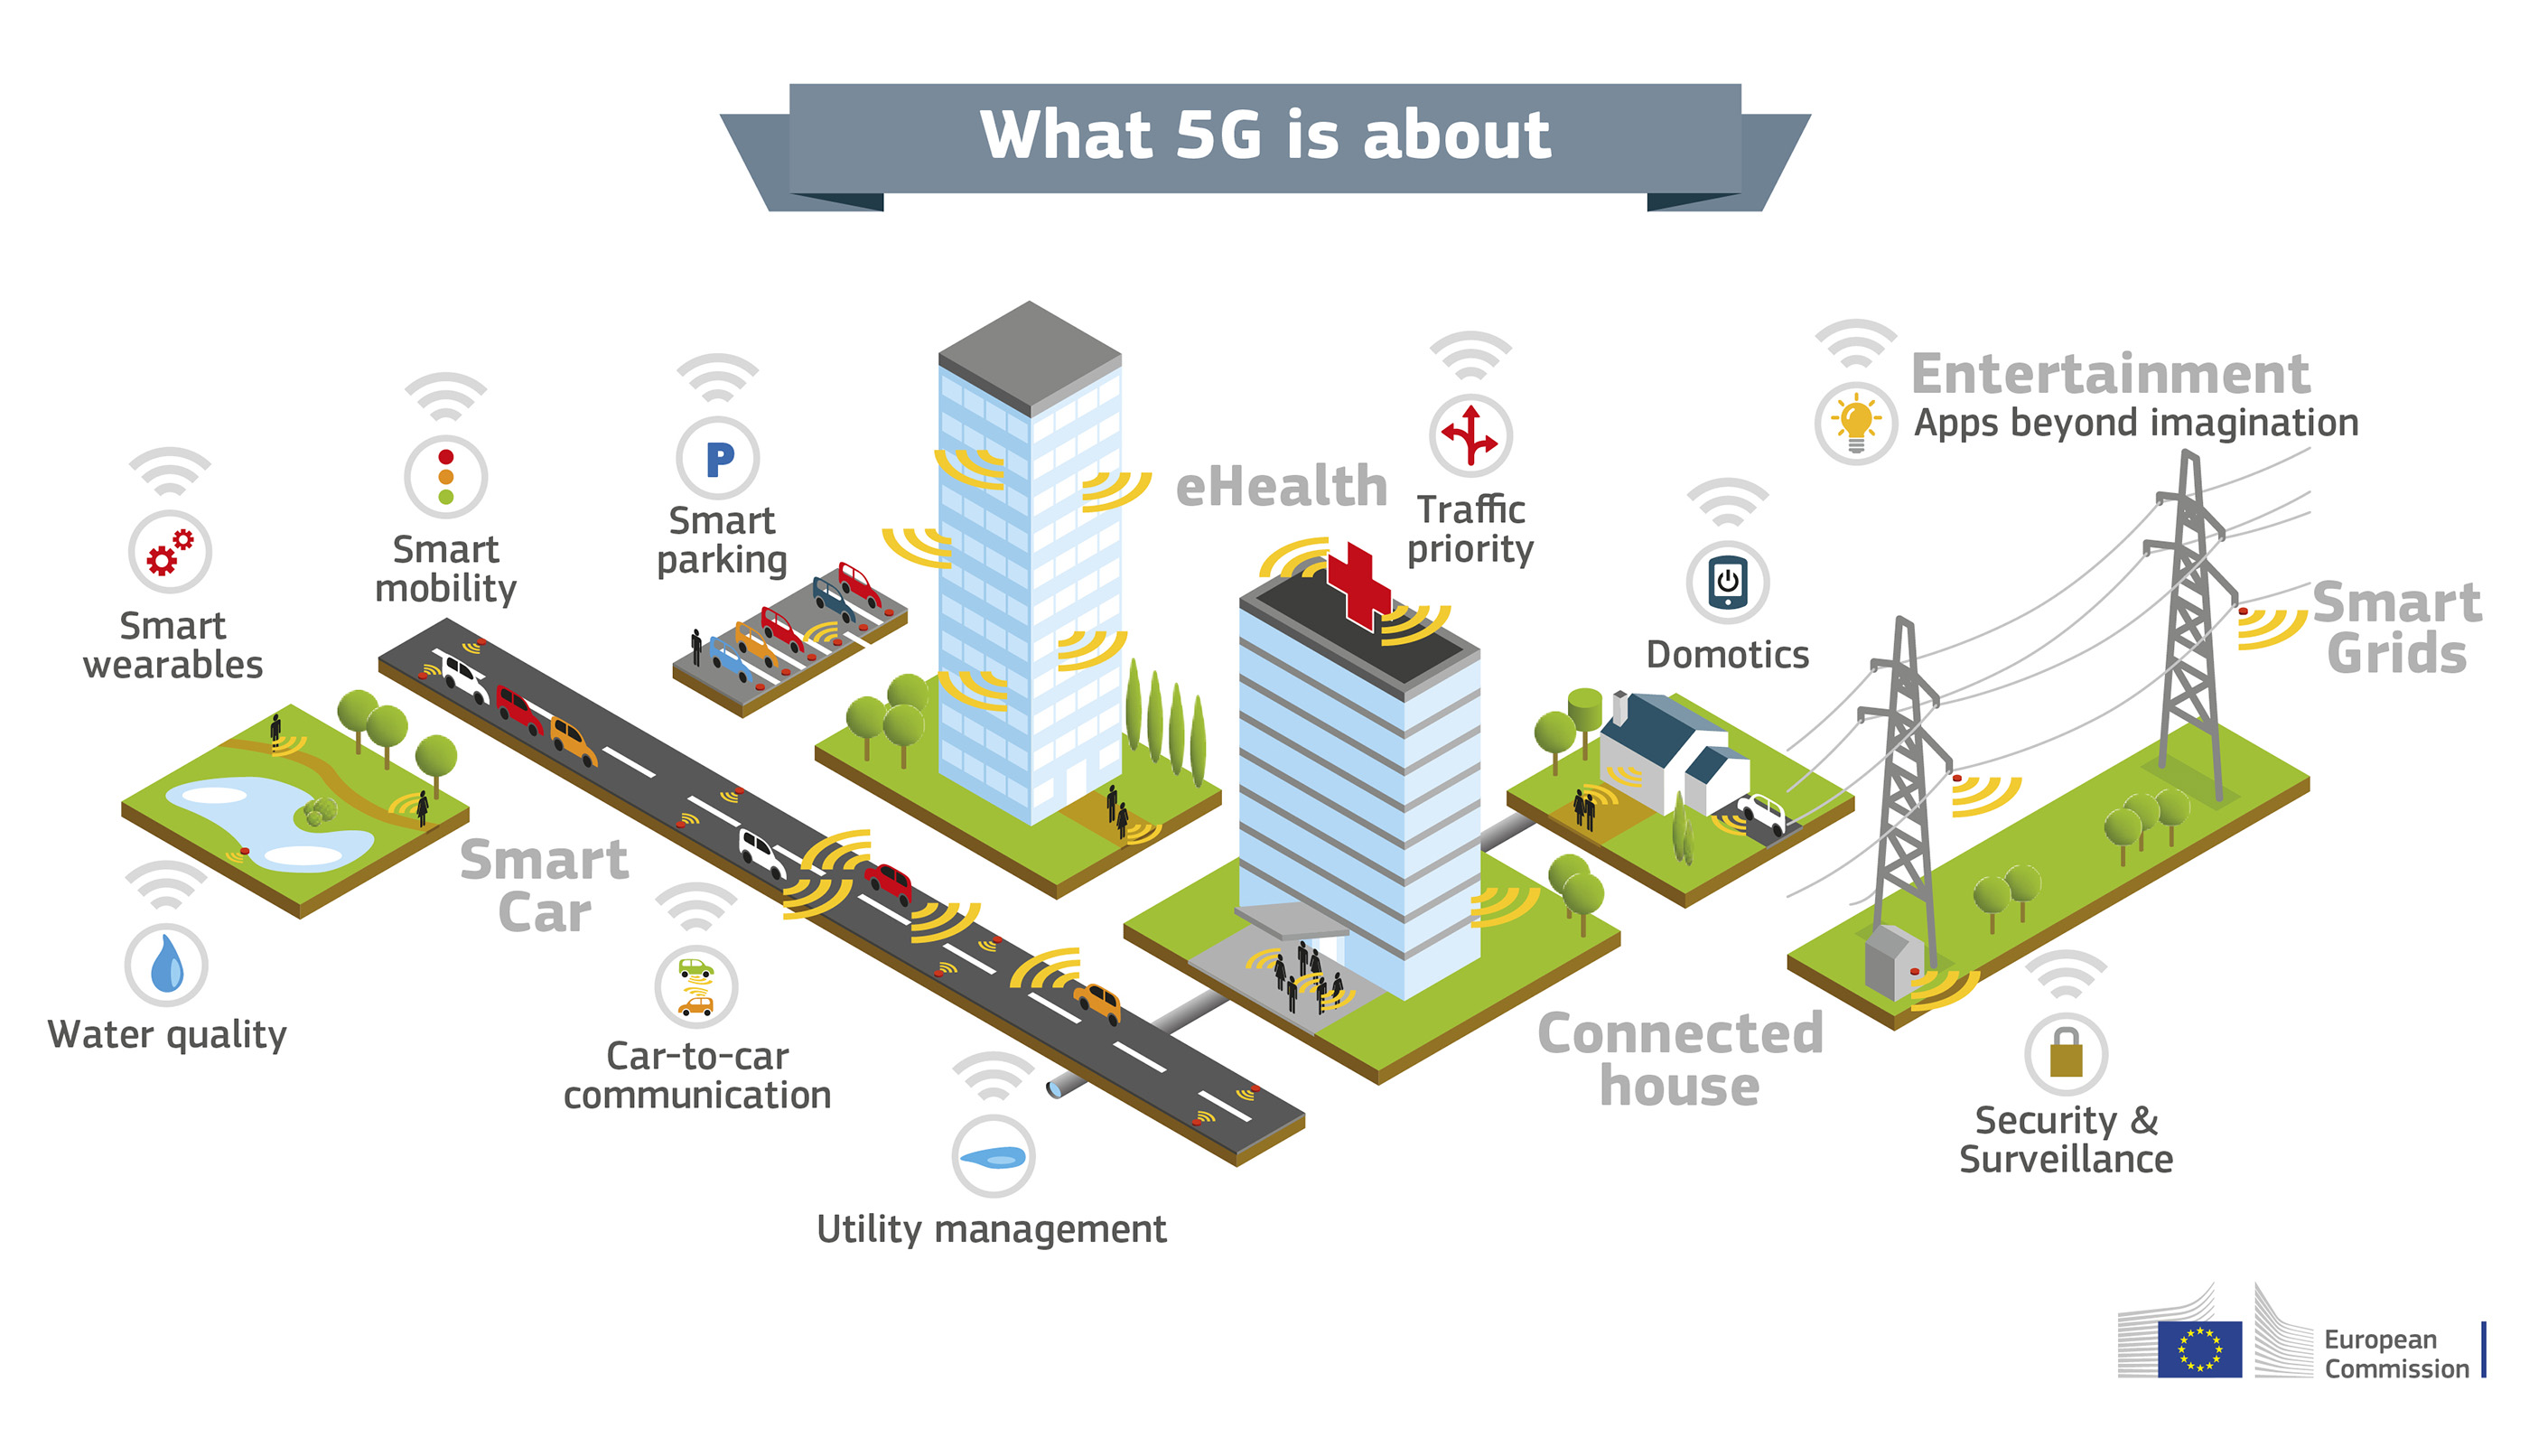 5g_joint_declaration_-_what_5g_is_about_2800px